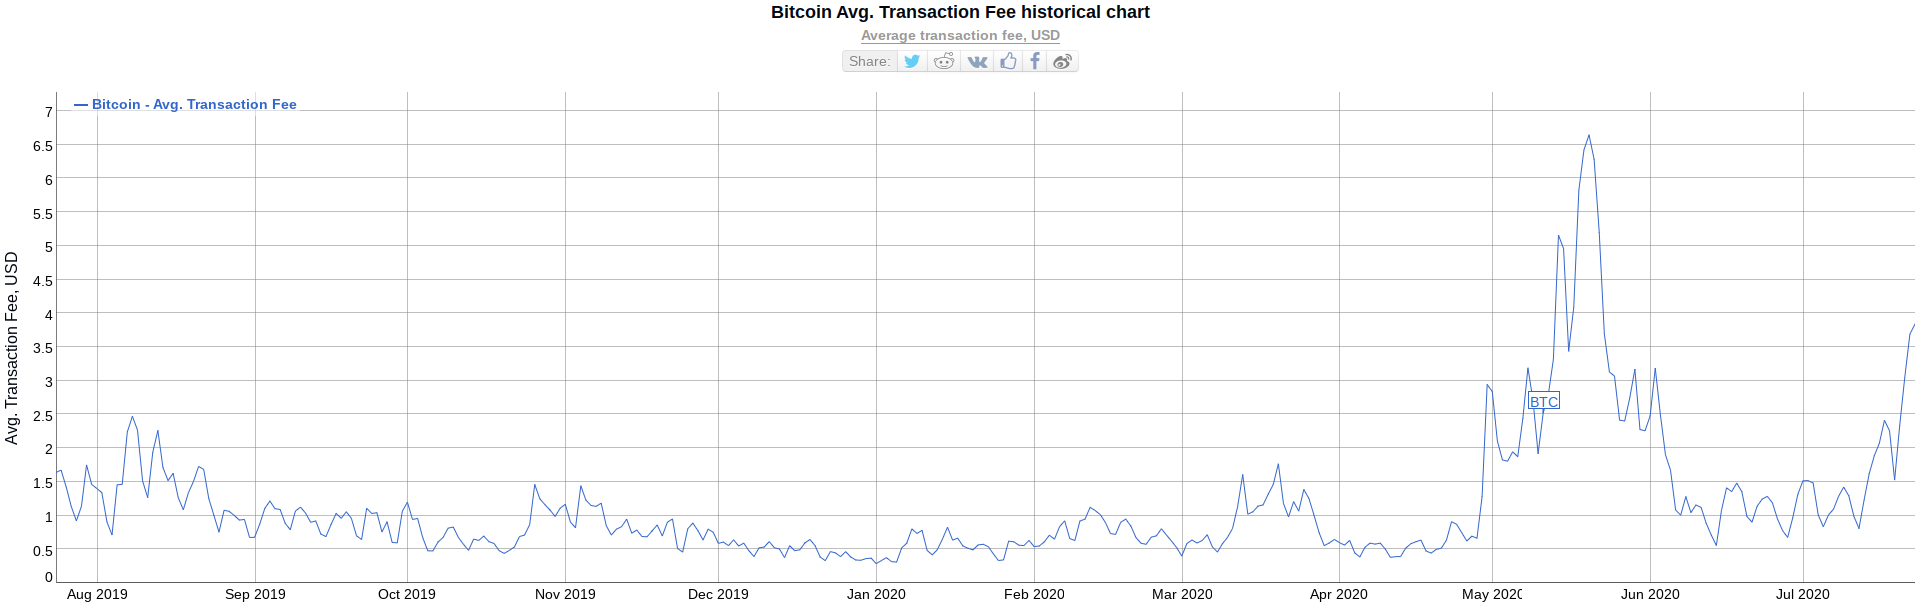 Bitcoin Transaction fees are increasing